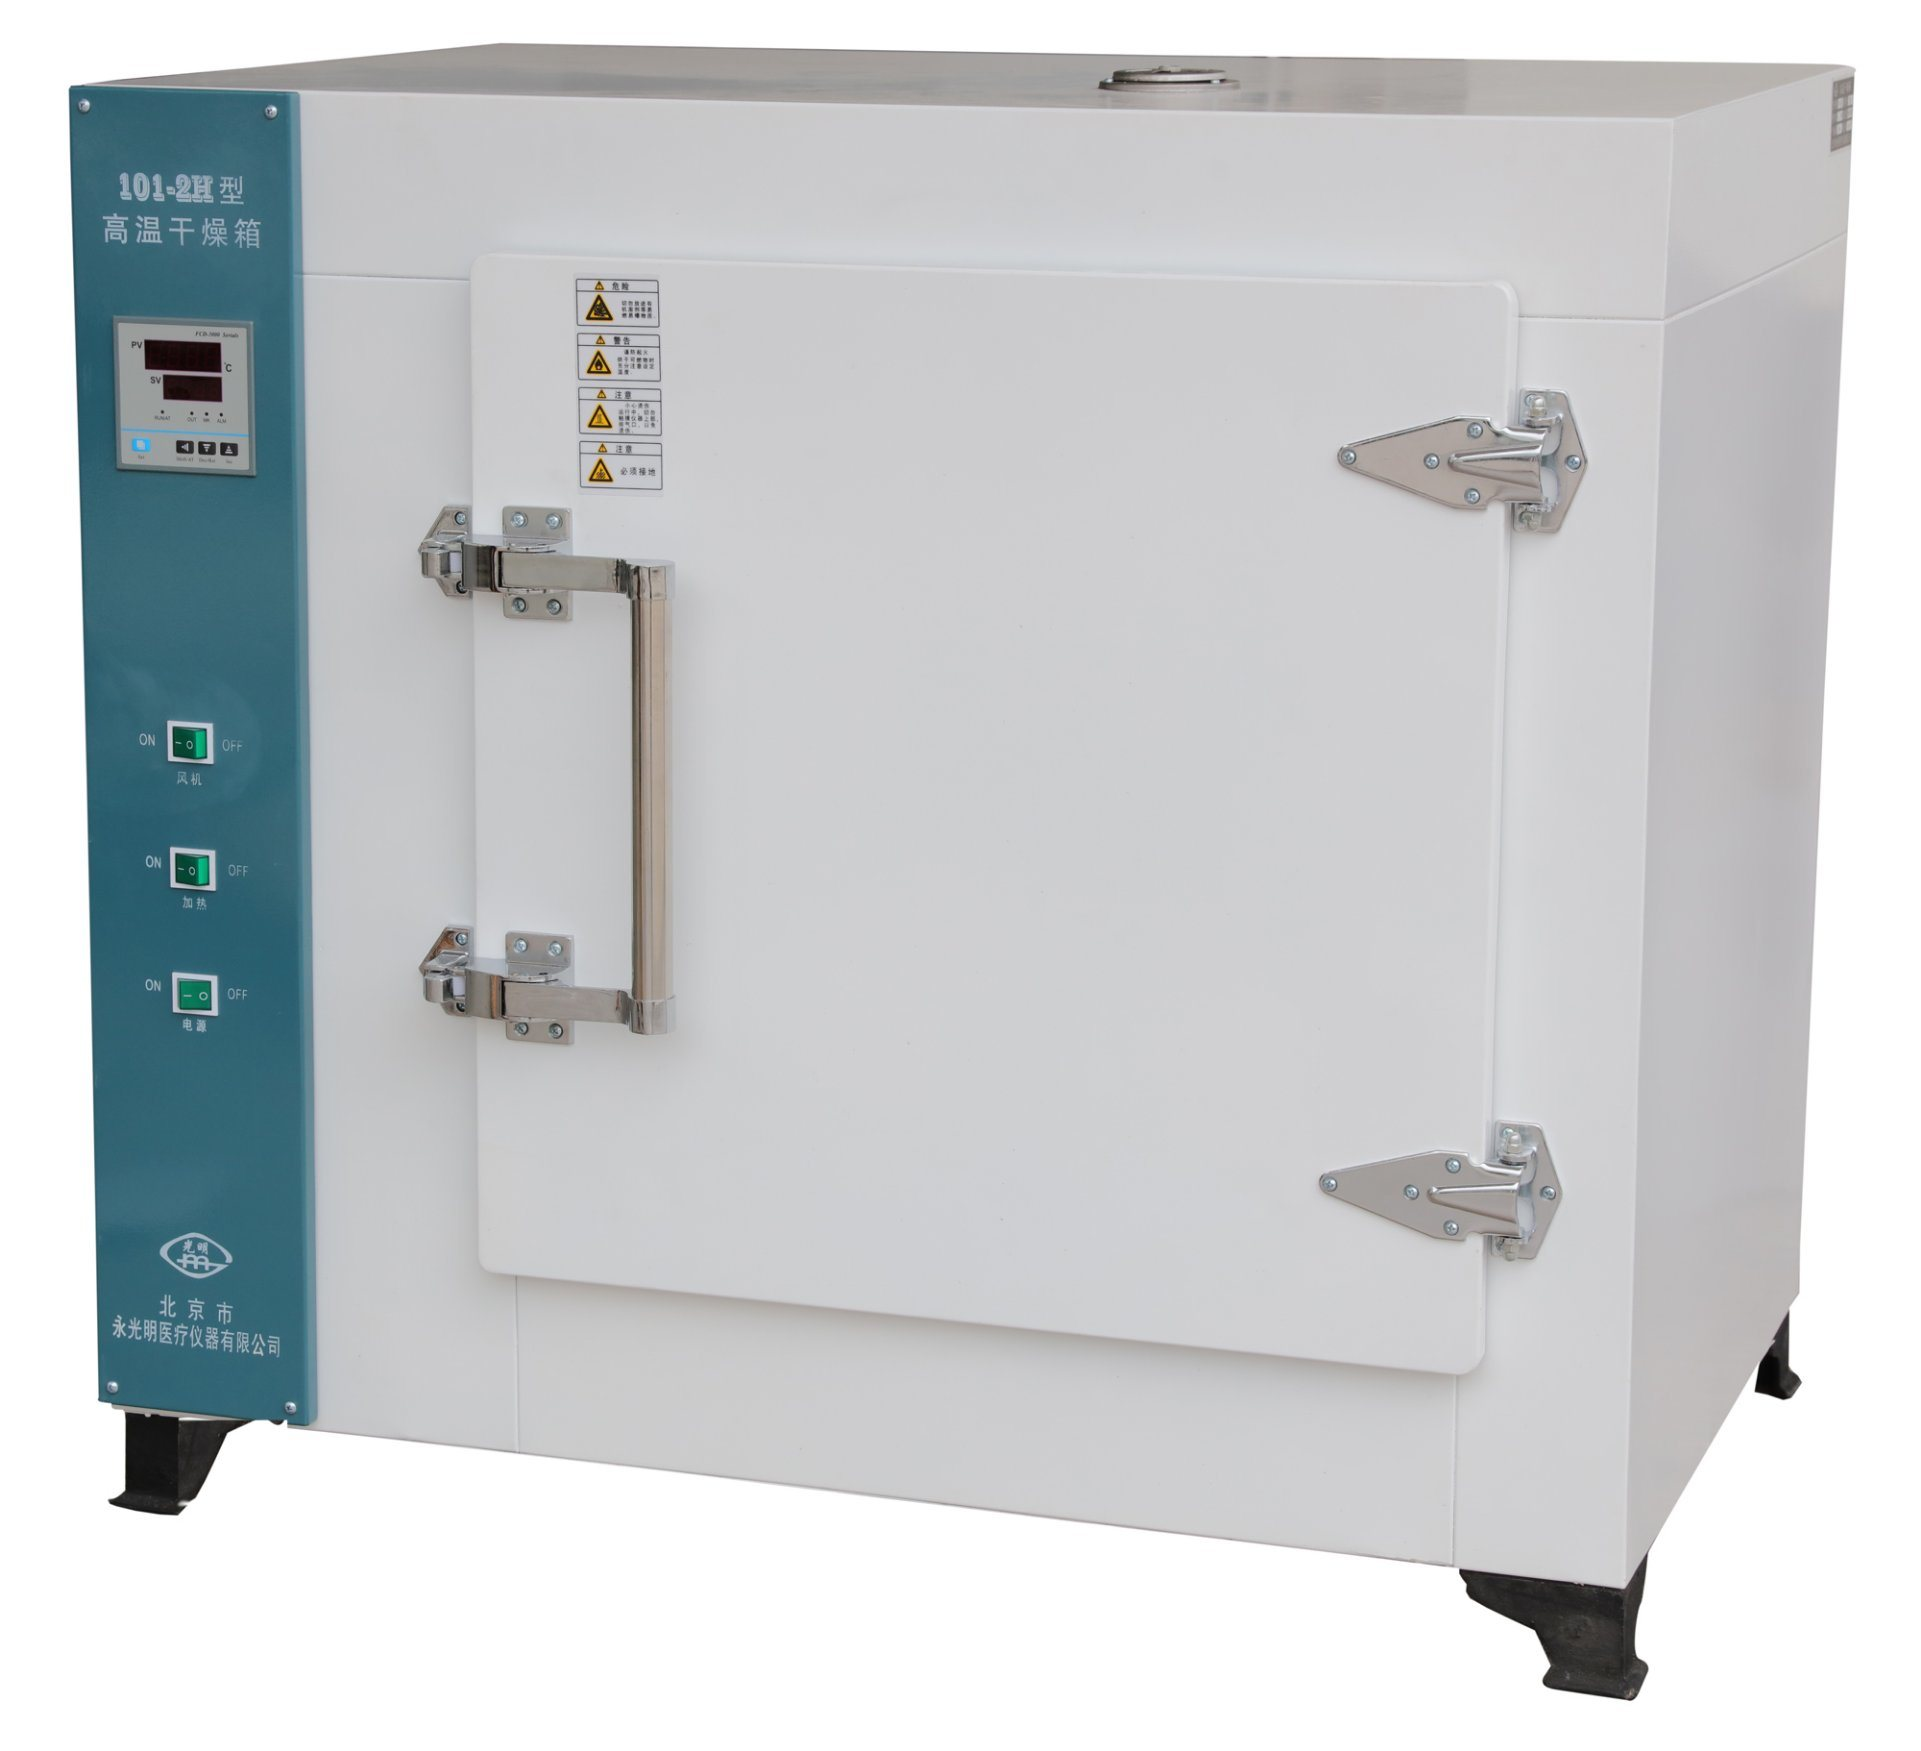 China 500° C High Temperature Baking Oven - China Lab Equipment, Lab ...